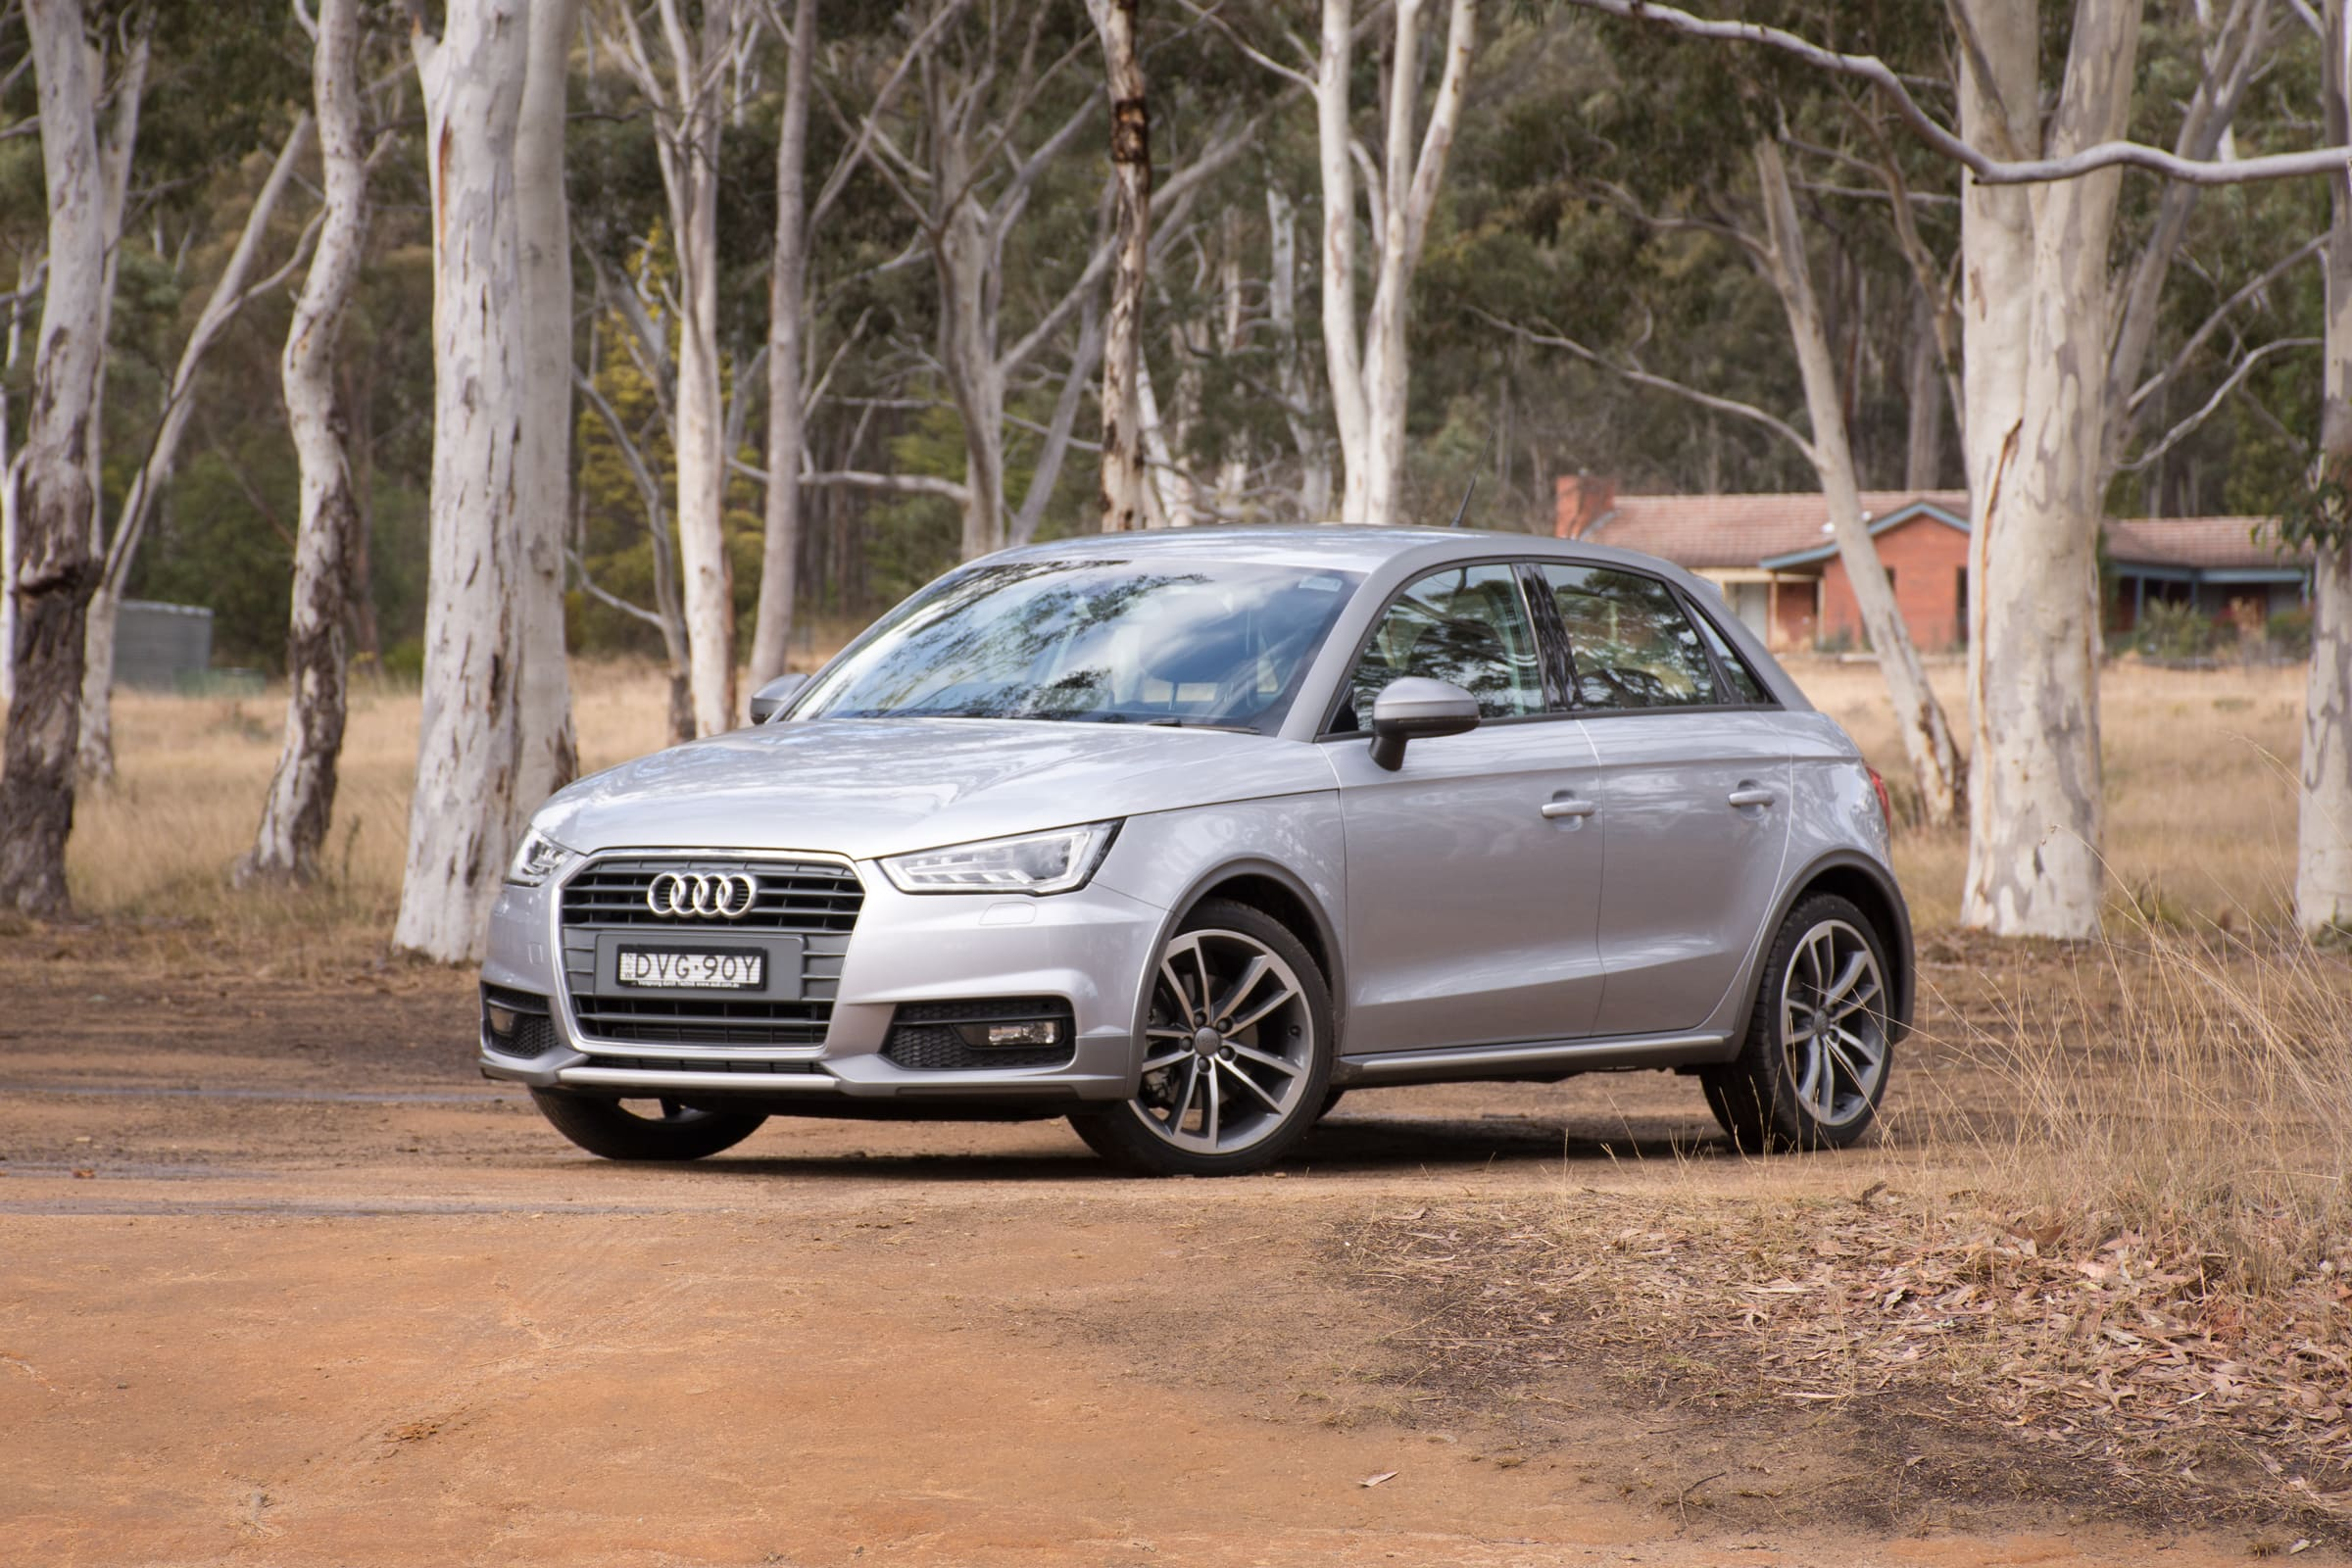 Audi A1 2018 I >> Audi A1 2018 Review 1 4 Tfsi Sportback Carsguide